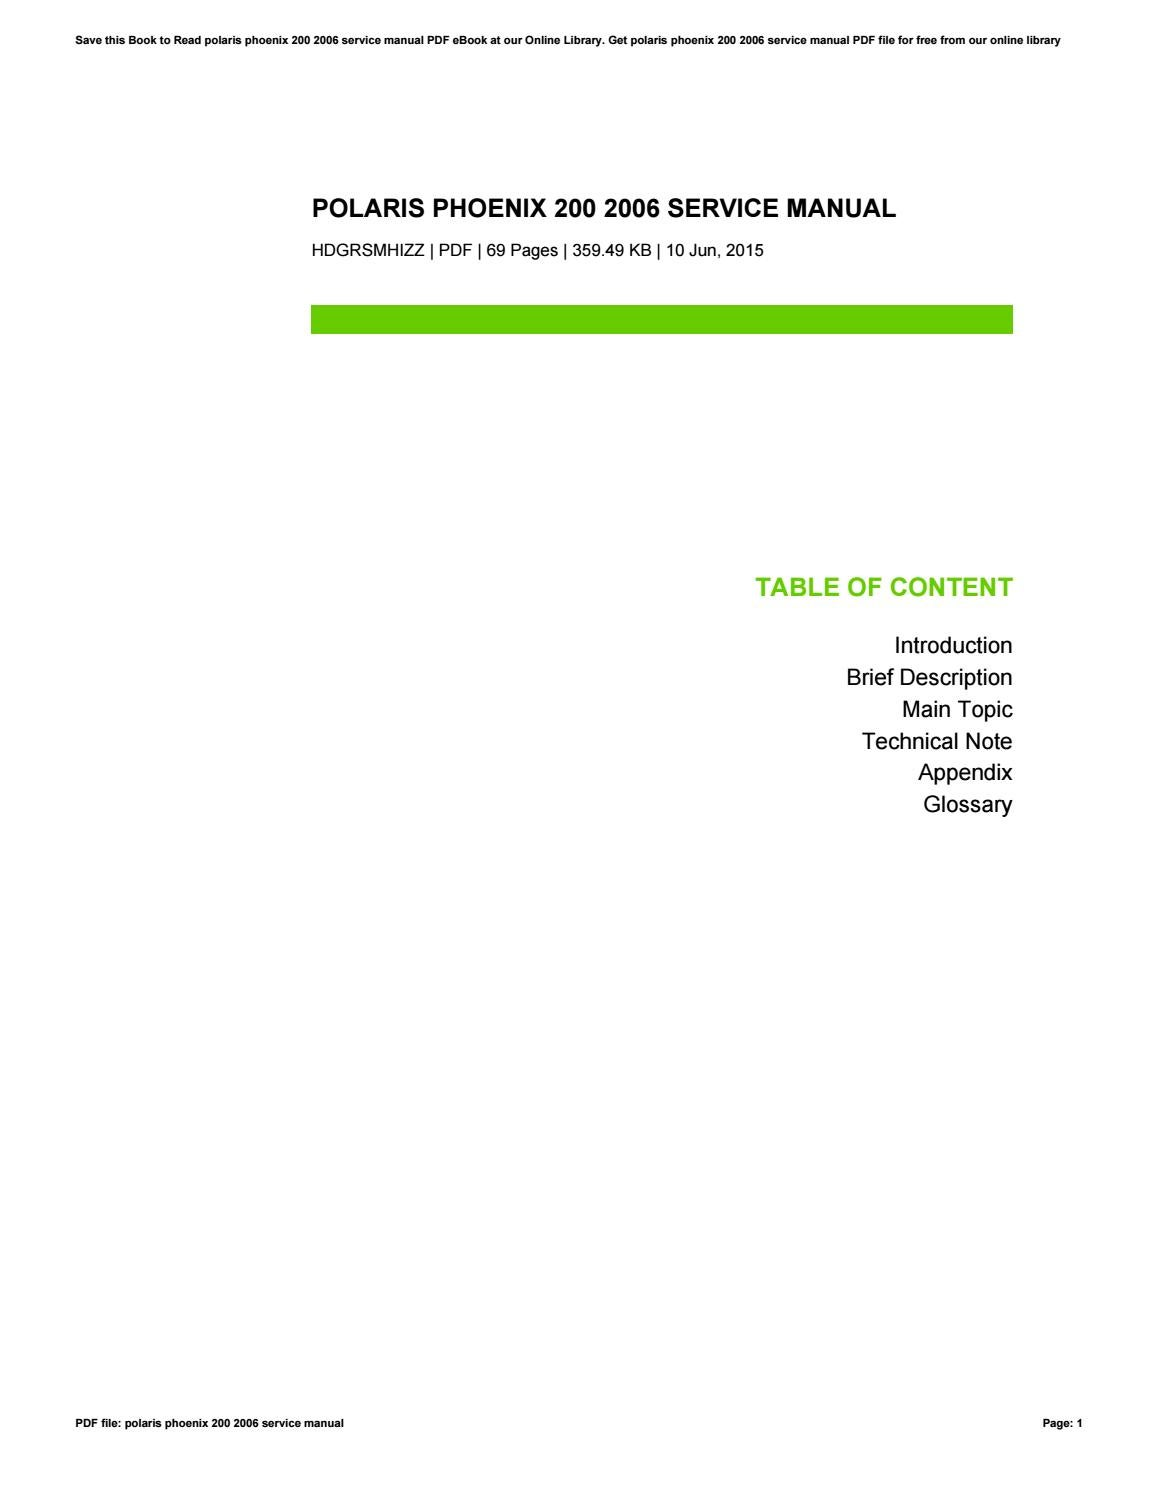 hight resolution of polari sawtooth service manual